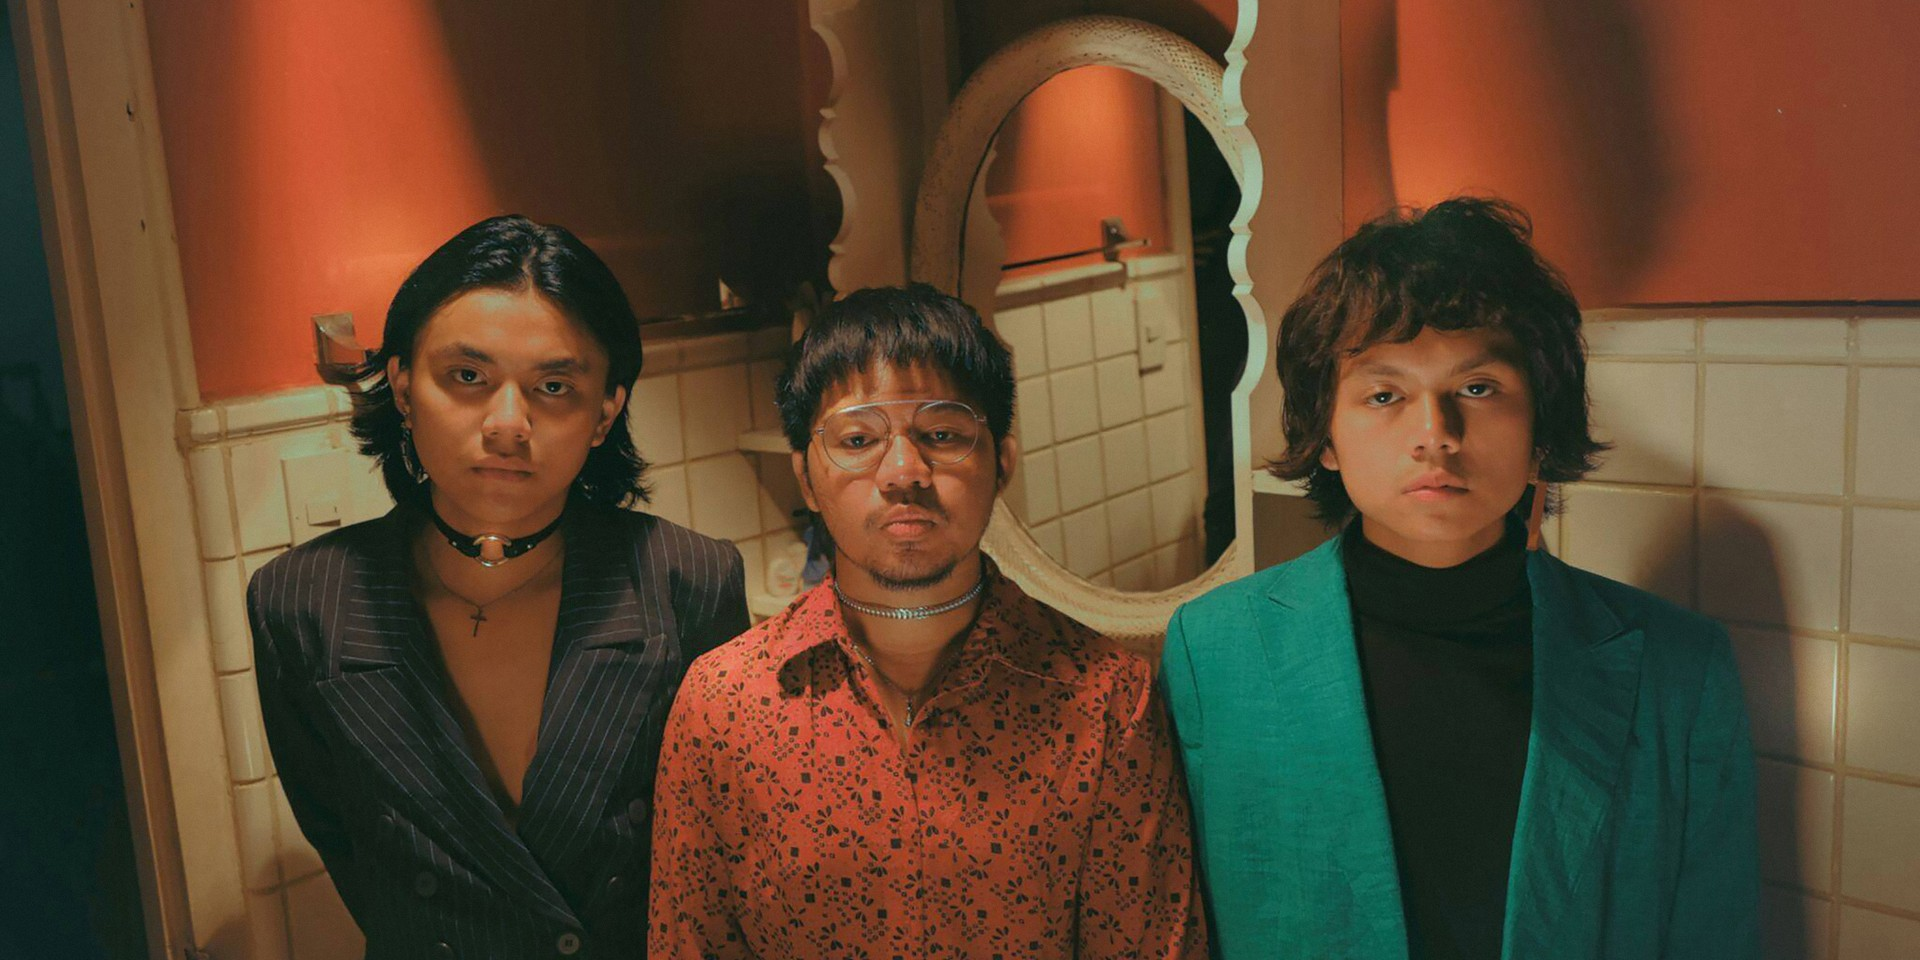 Tickets for IV of Spades debut concert in Singapore have now been released